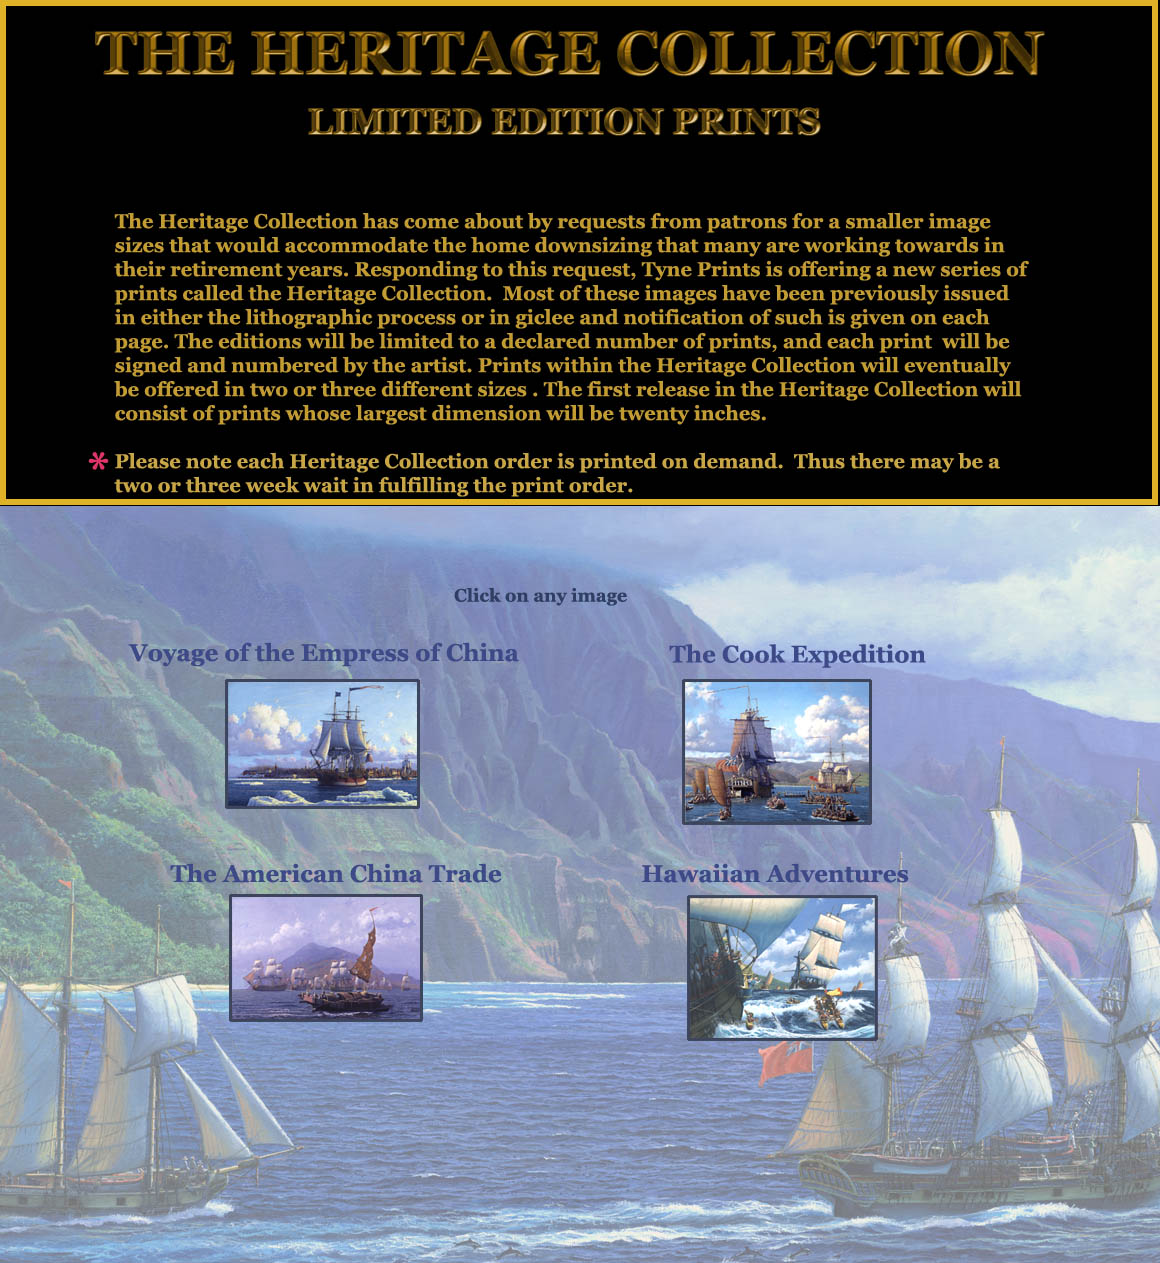 The Heritage Print Collection menu